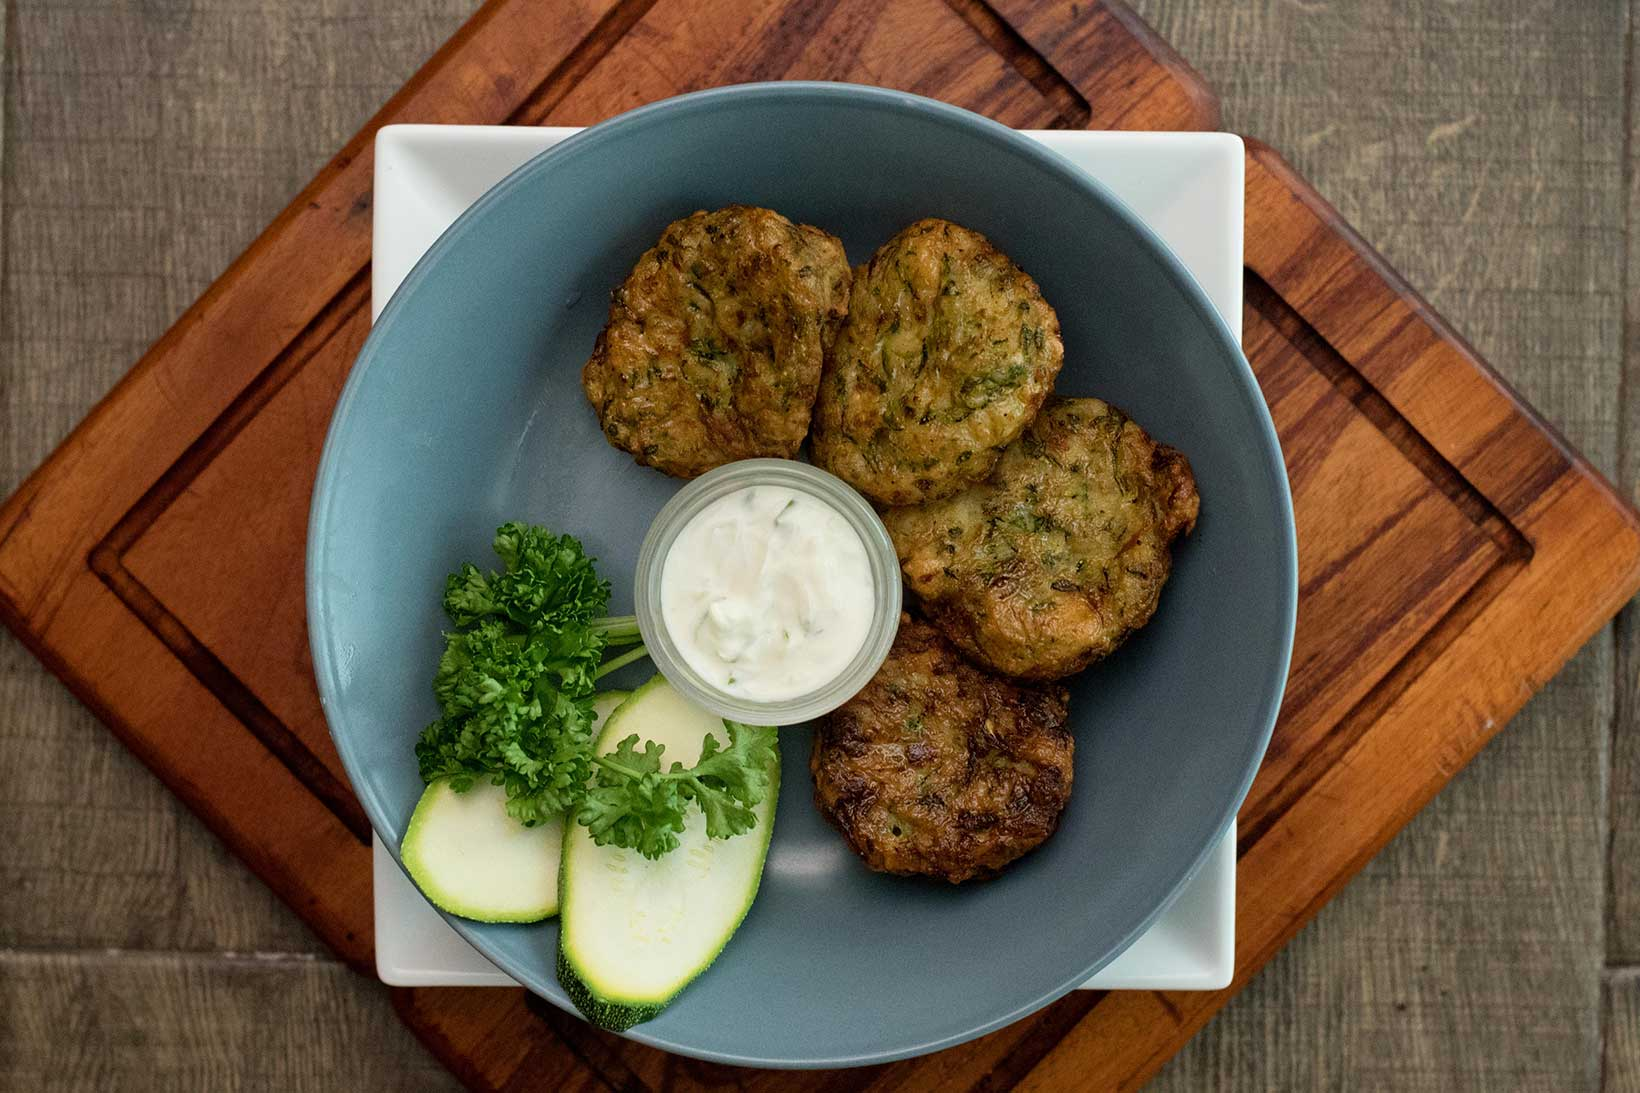 Pan fried zucchini fritters with tzatziki dipping sauce.